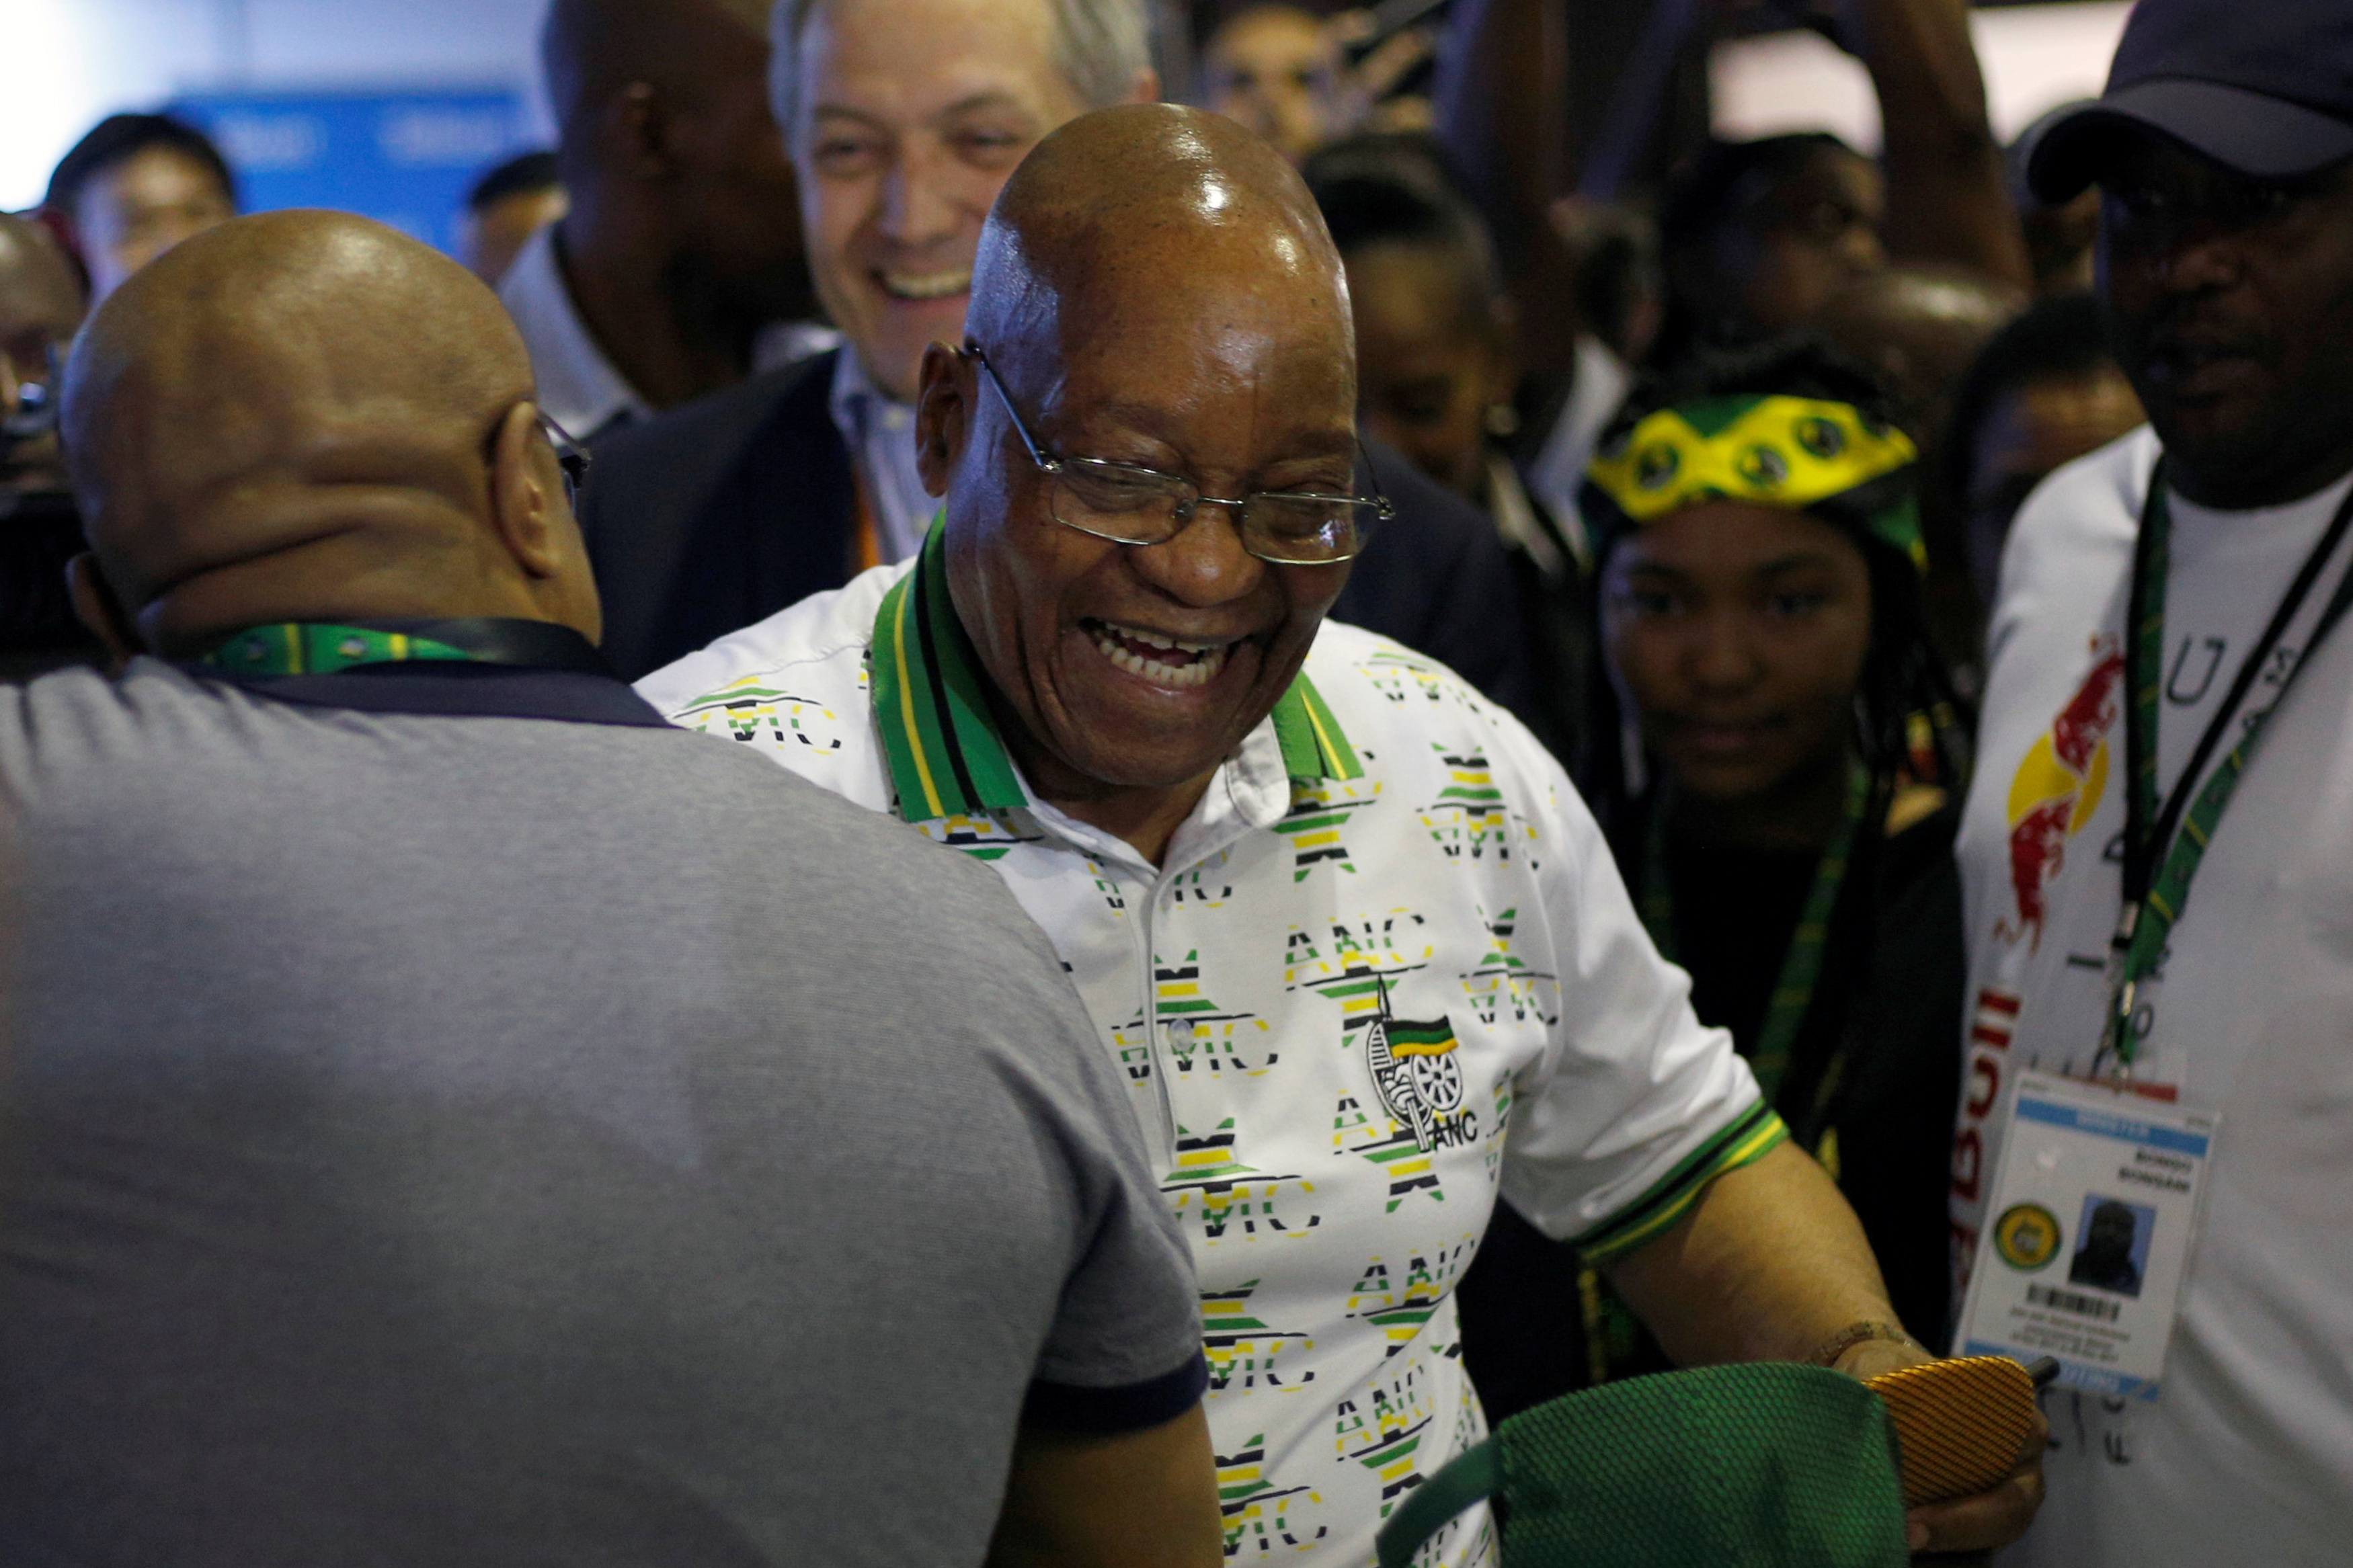 South Africa's President Jacob Zuma reacts during a tour of the Nasrec Expo Center where the 54th National Conference of the ruling African National Congress (ANC) is taking place in Johannesburg, South Africa, Dec. 18, 2017.